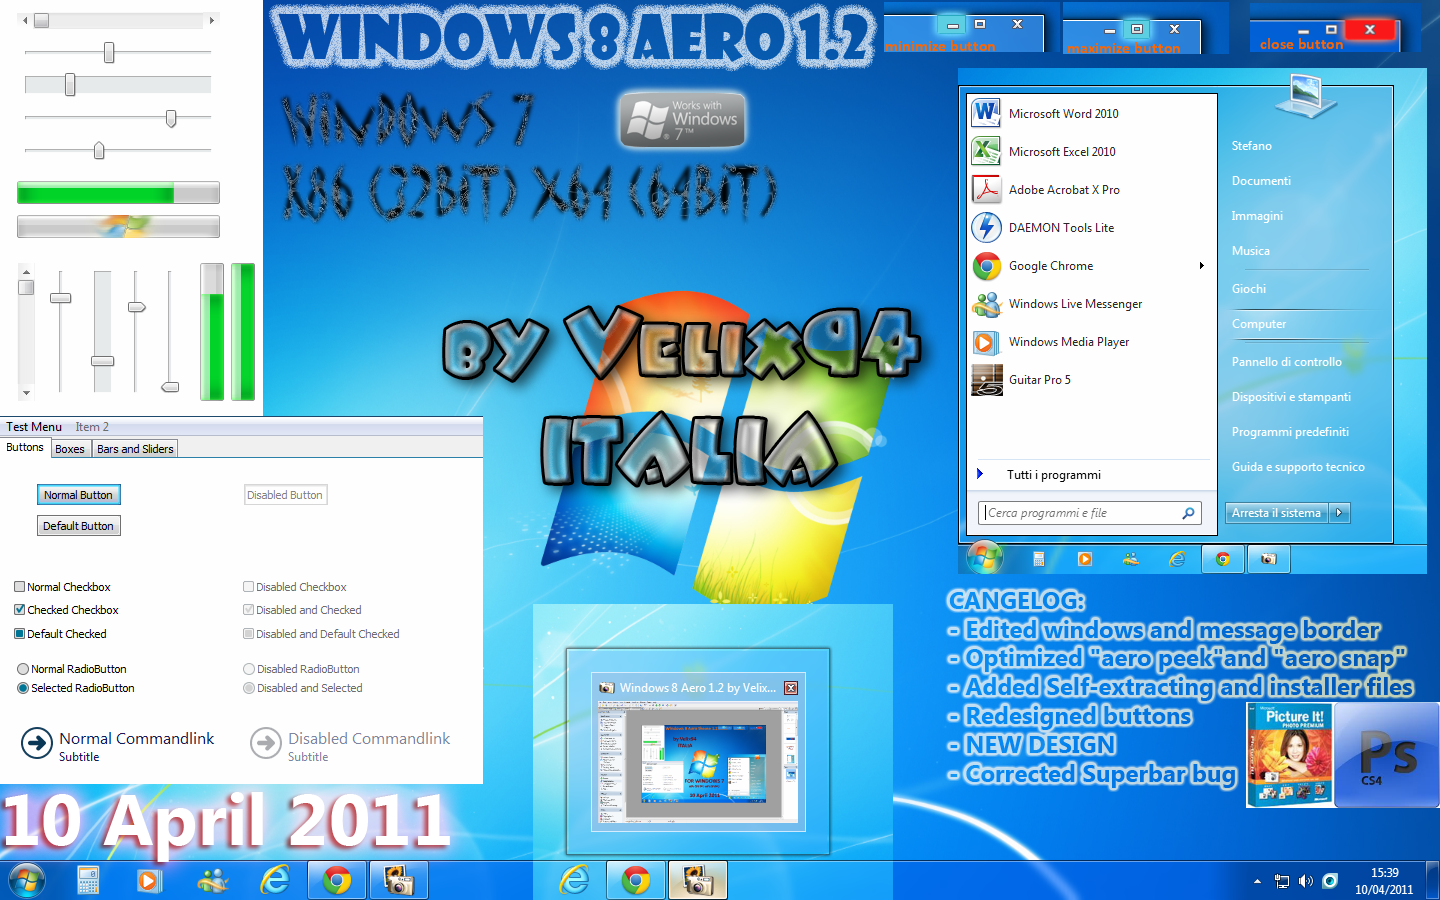 Windows 8 Aero 1.2 by Velix94